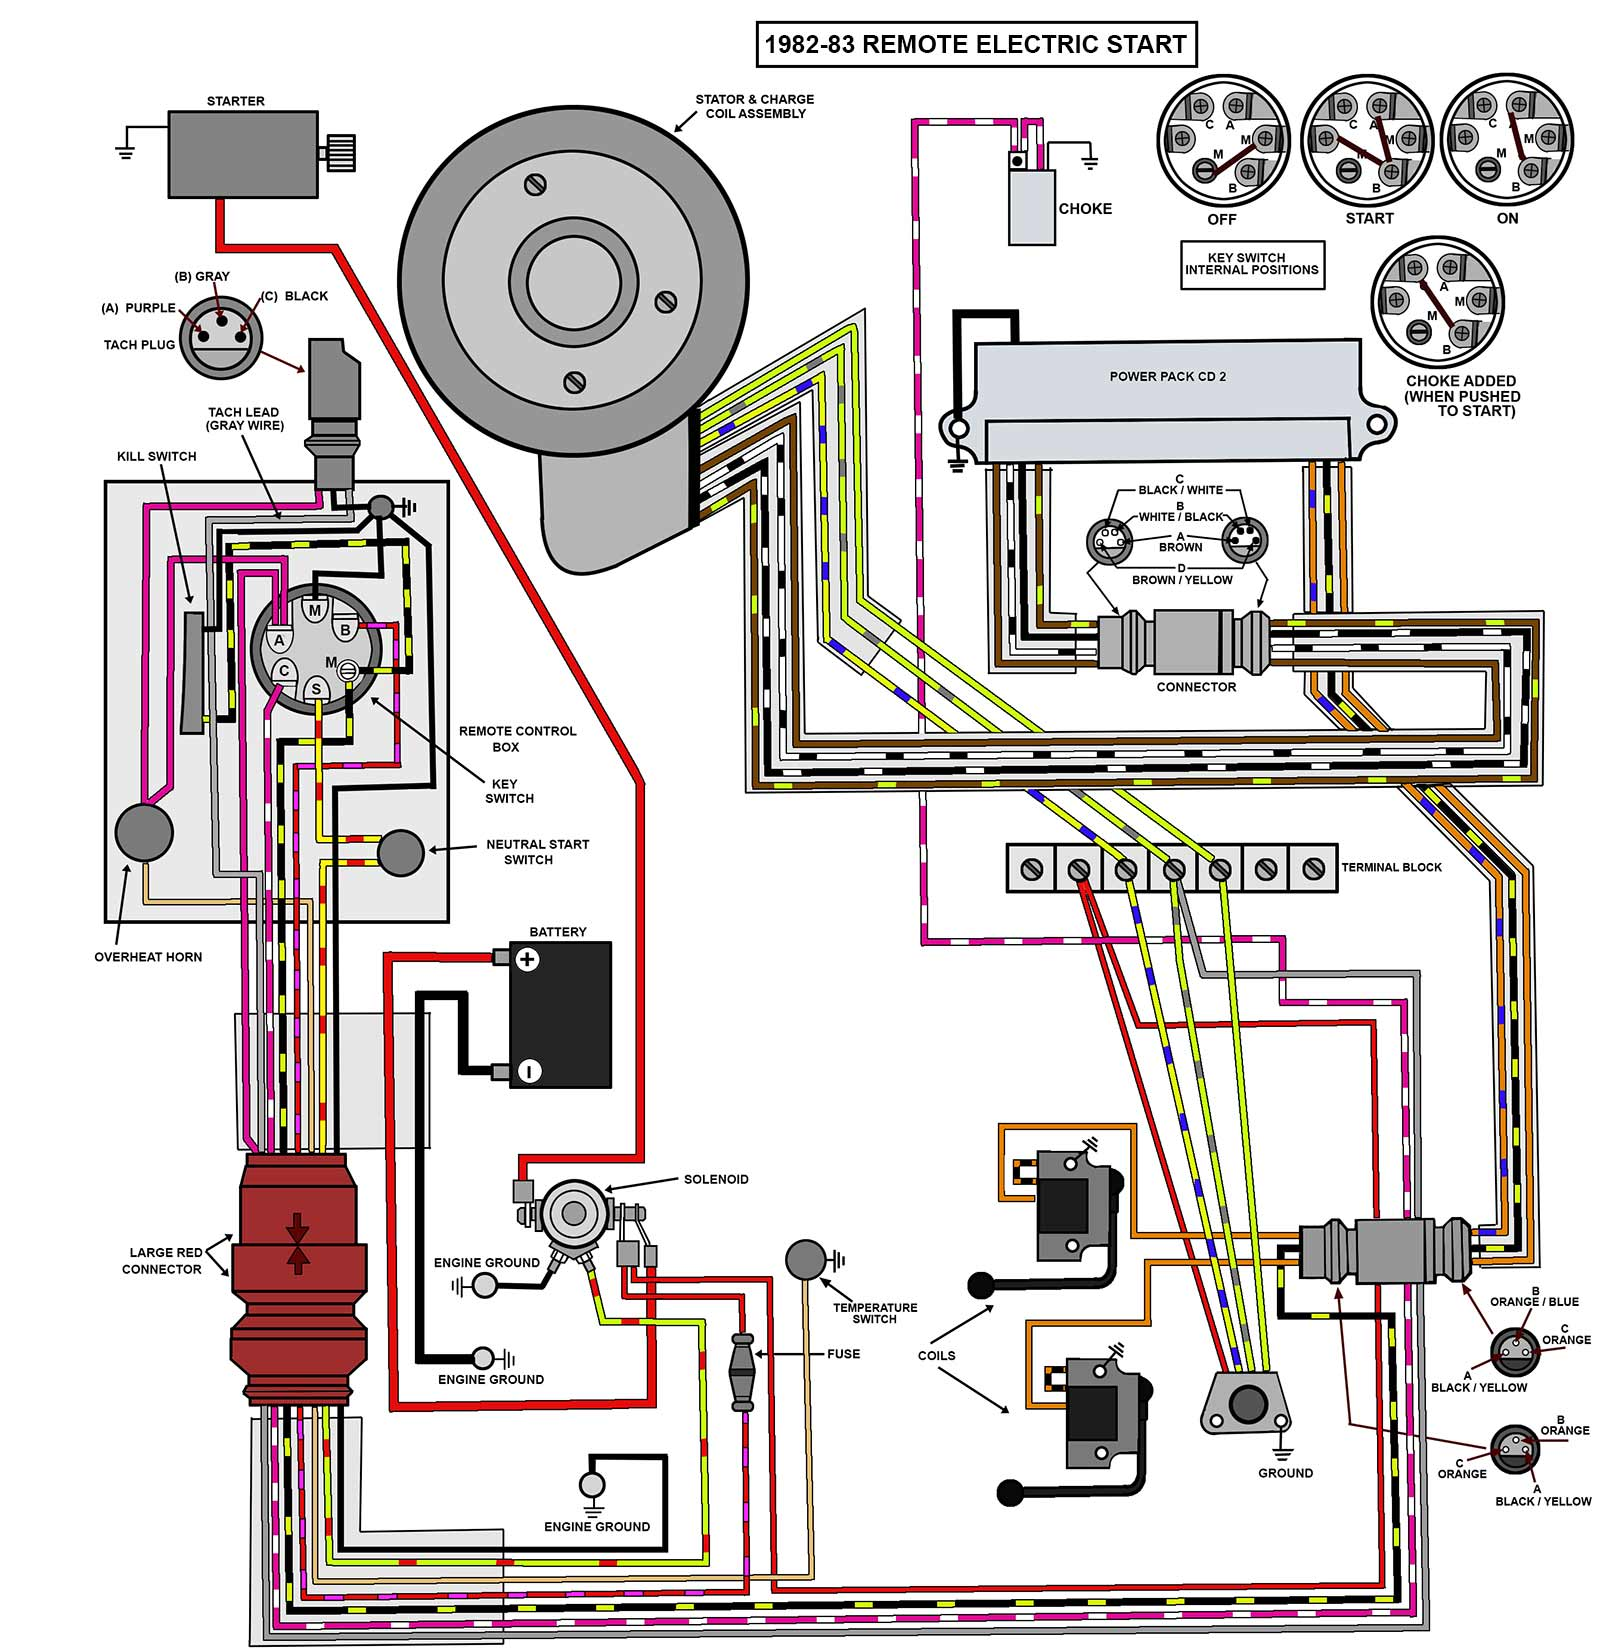 hight resolution of evinrude johnson outboard wiring diagrams mastertech marine rh maxrules com 25 hp evinrude wiring diagram 25 hp evinrude wiring diagram